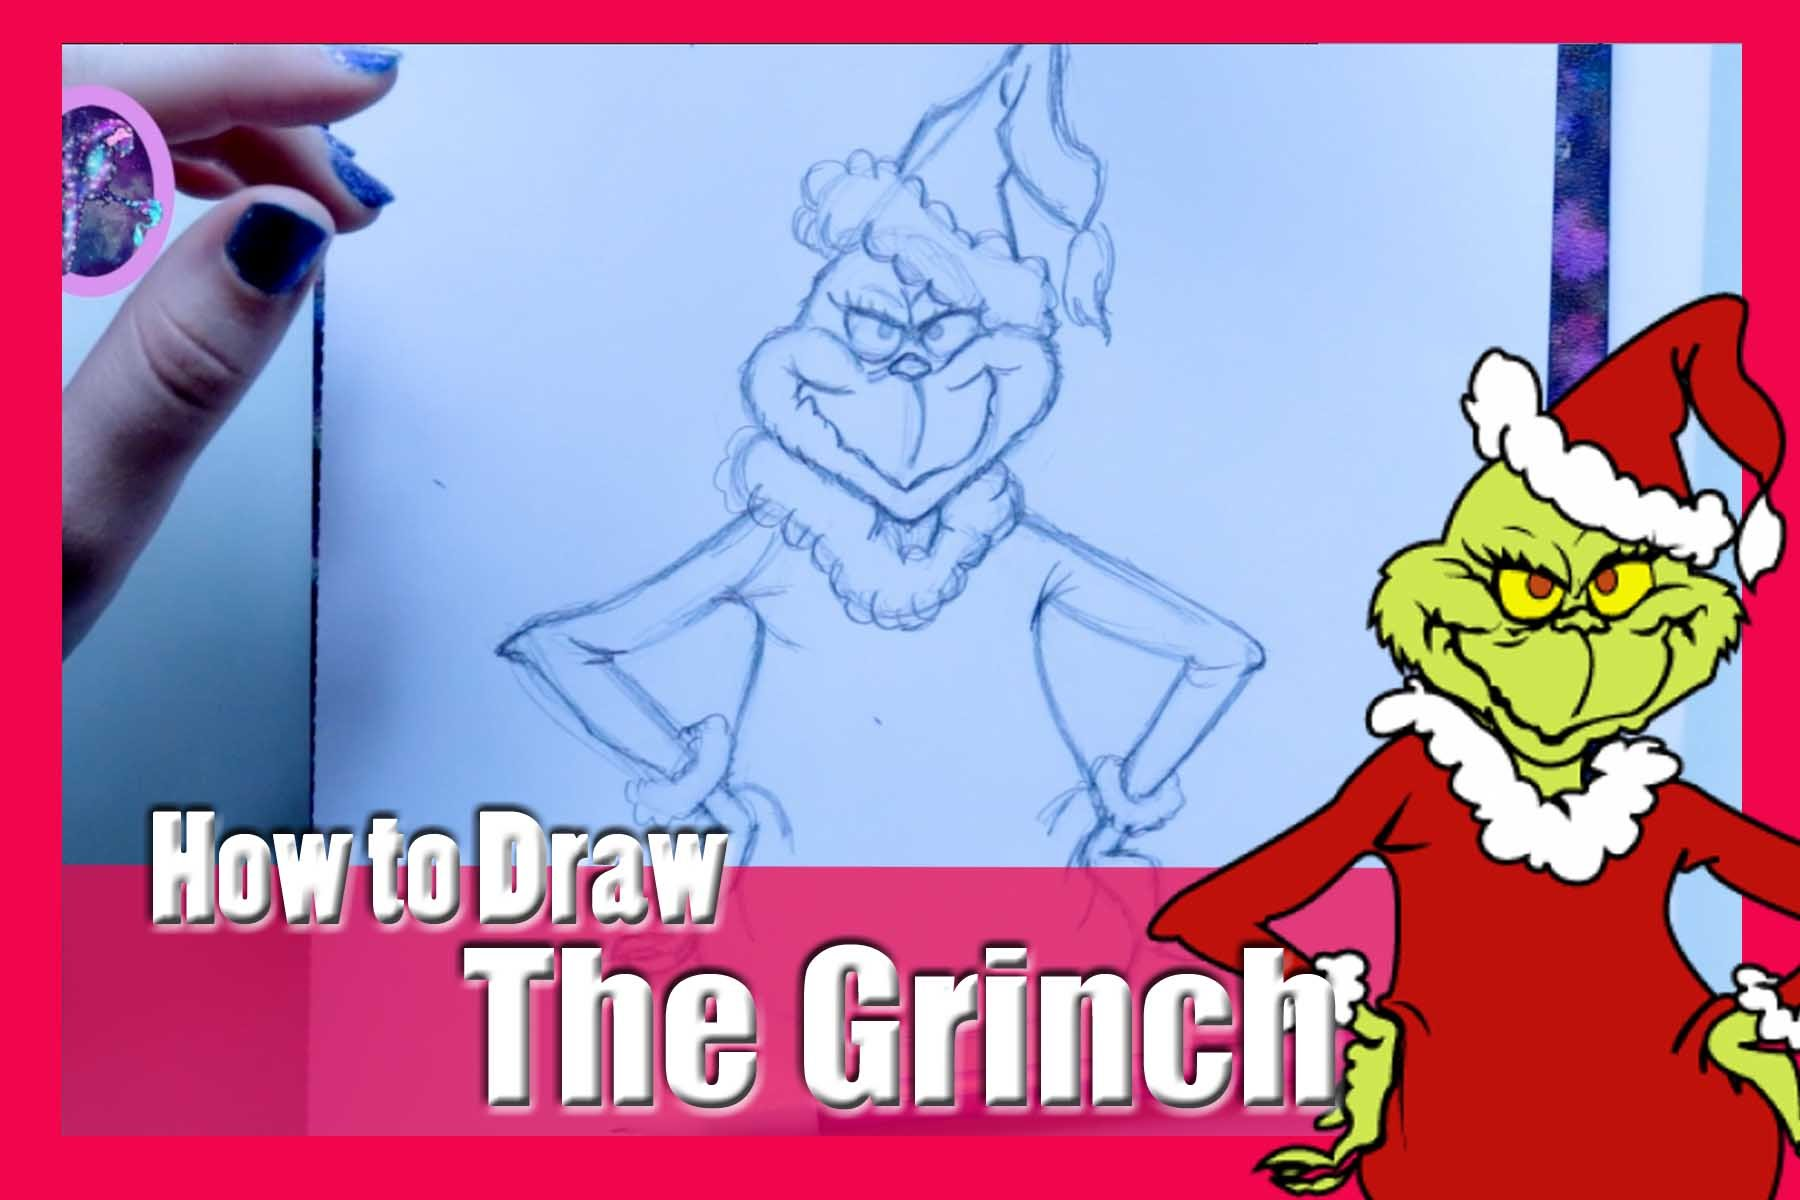 1800x1200 How To Draw The Grinch (From Dr. Suess' How The Grinch Stole